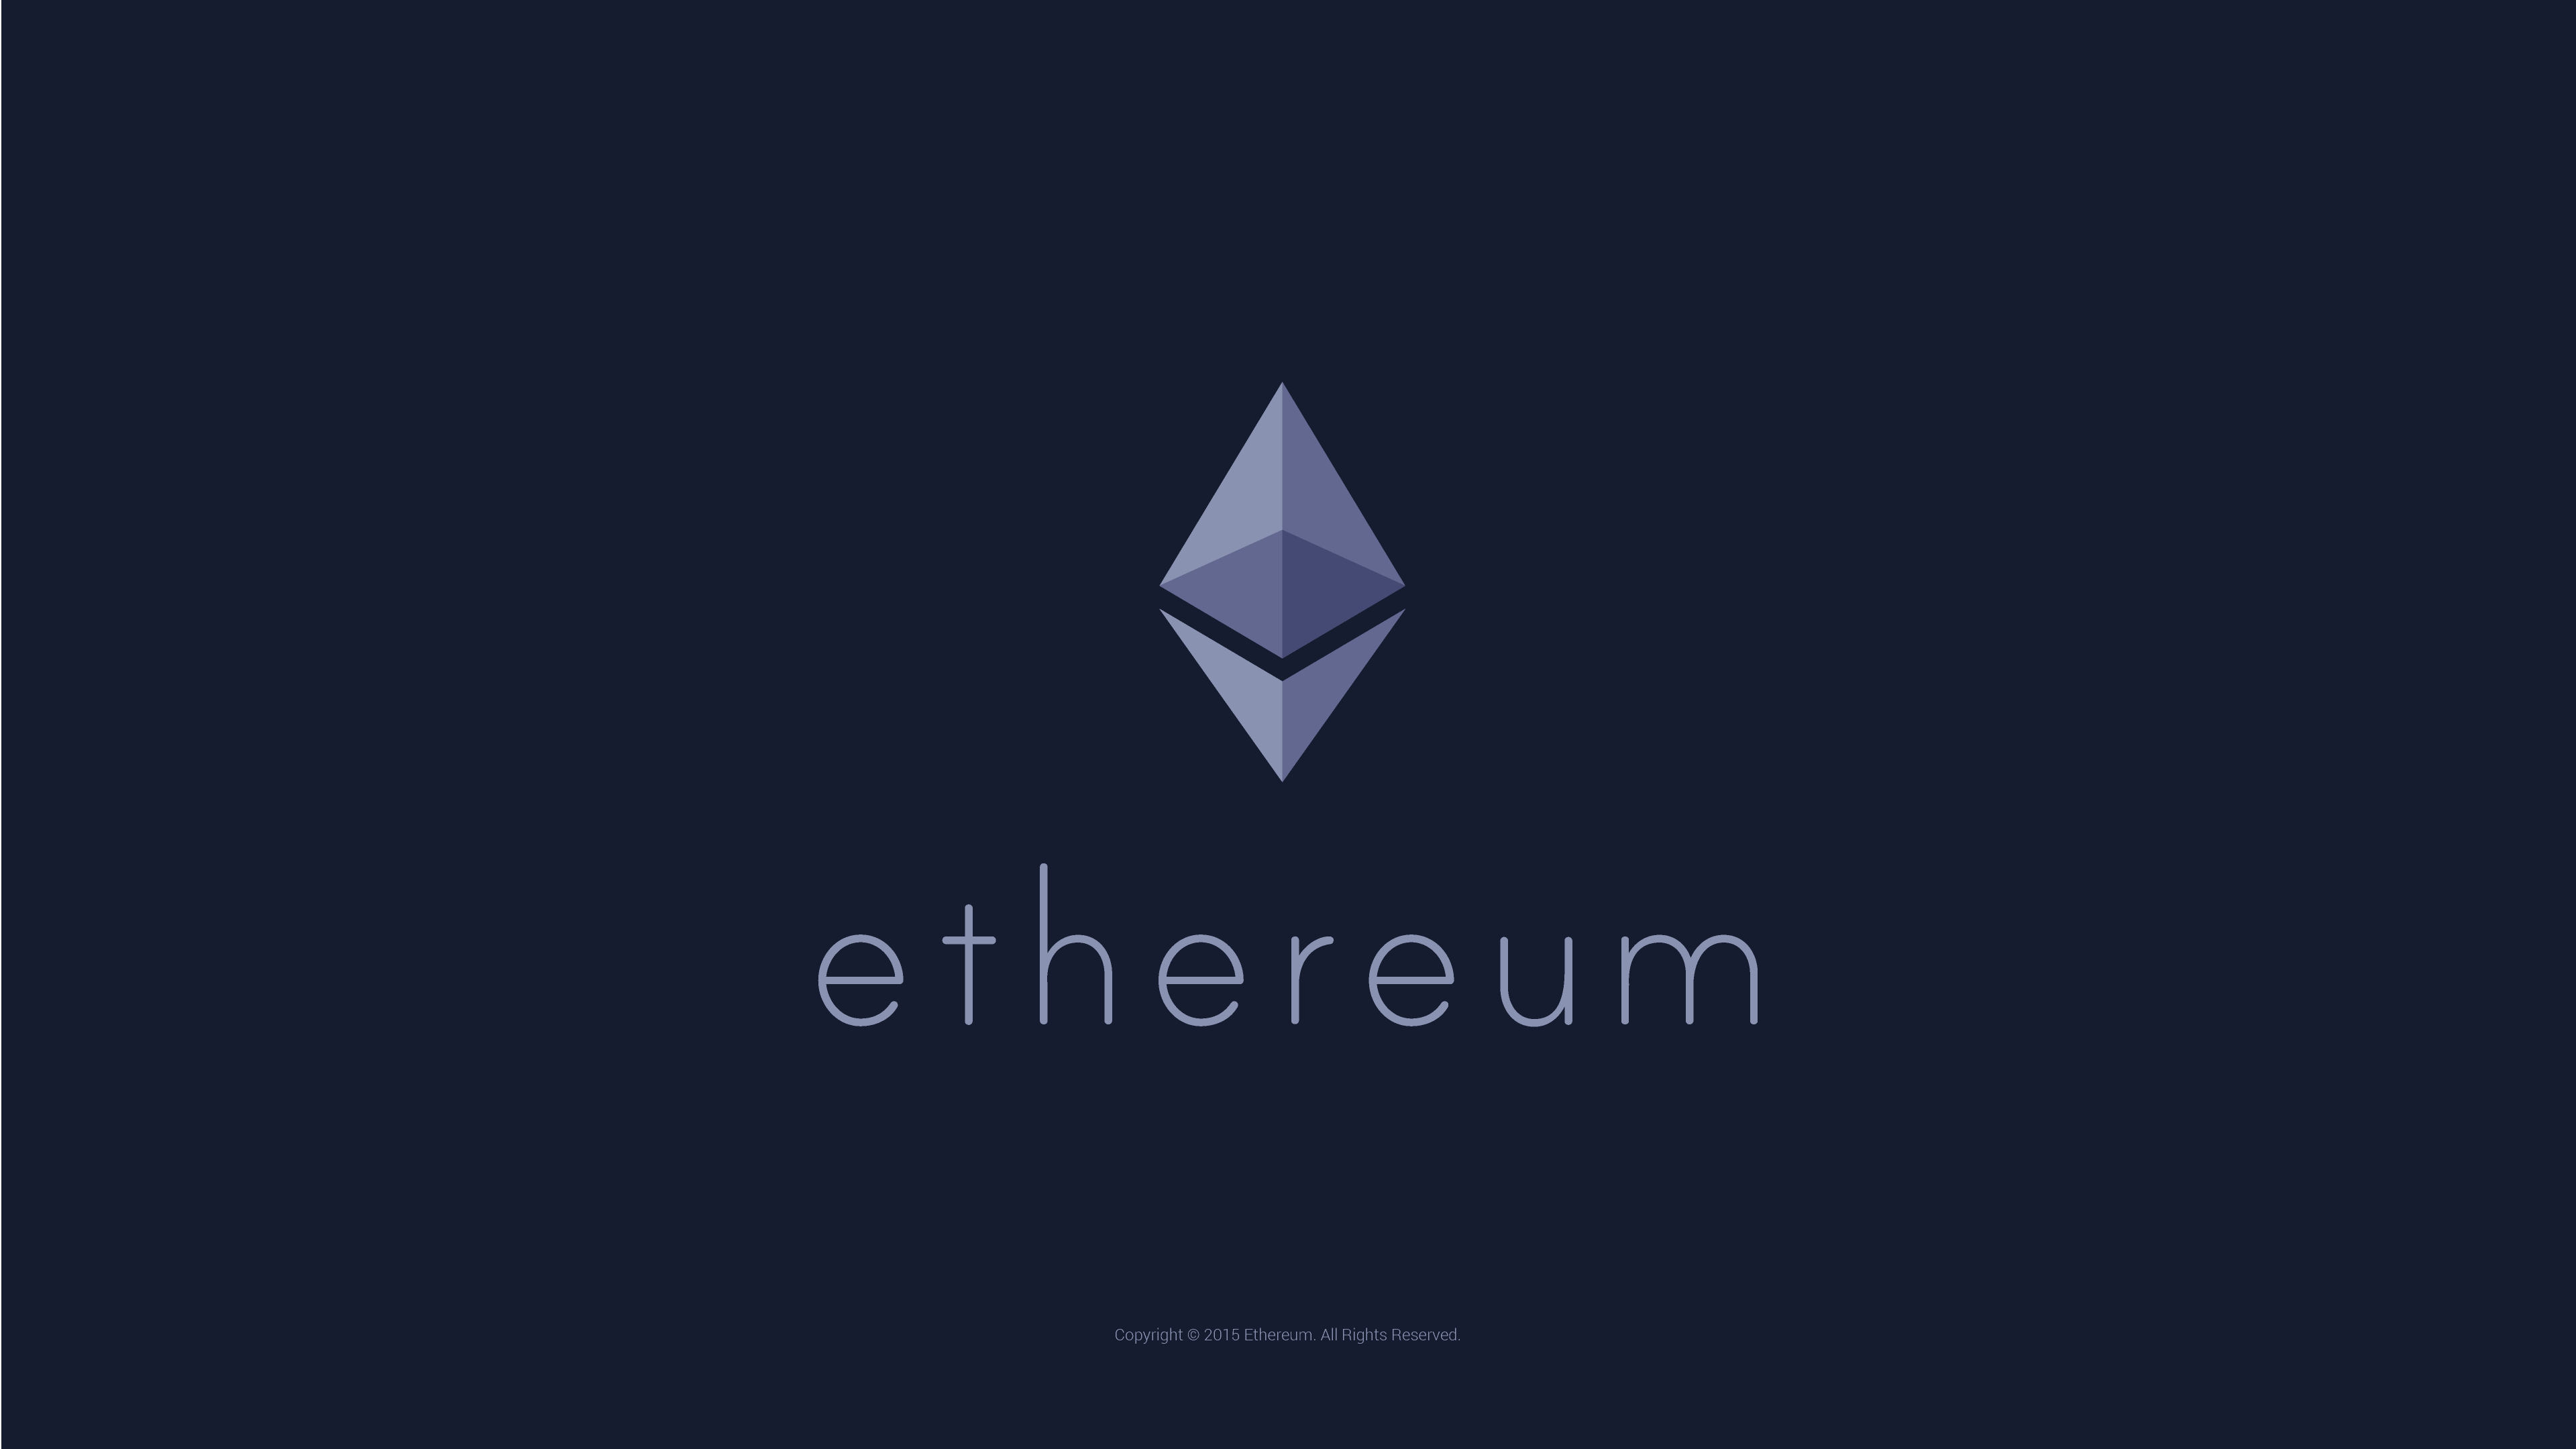 Ether has arrived!